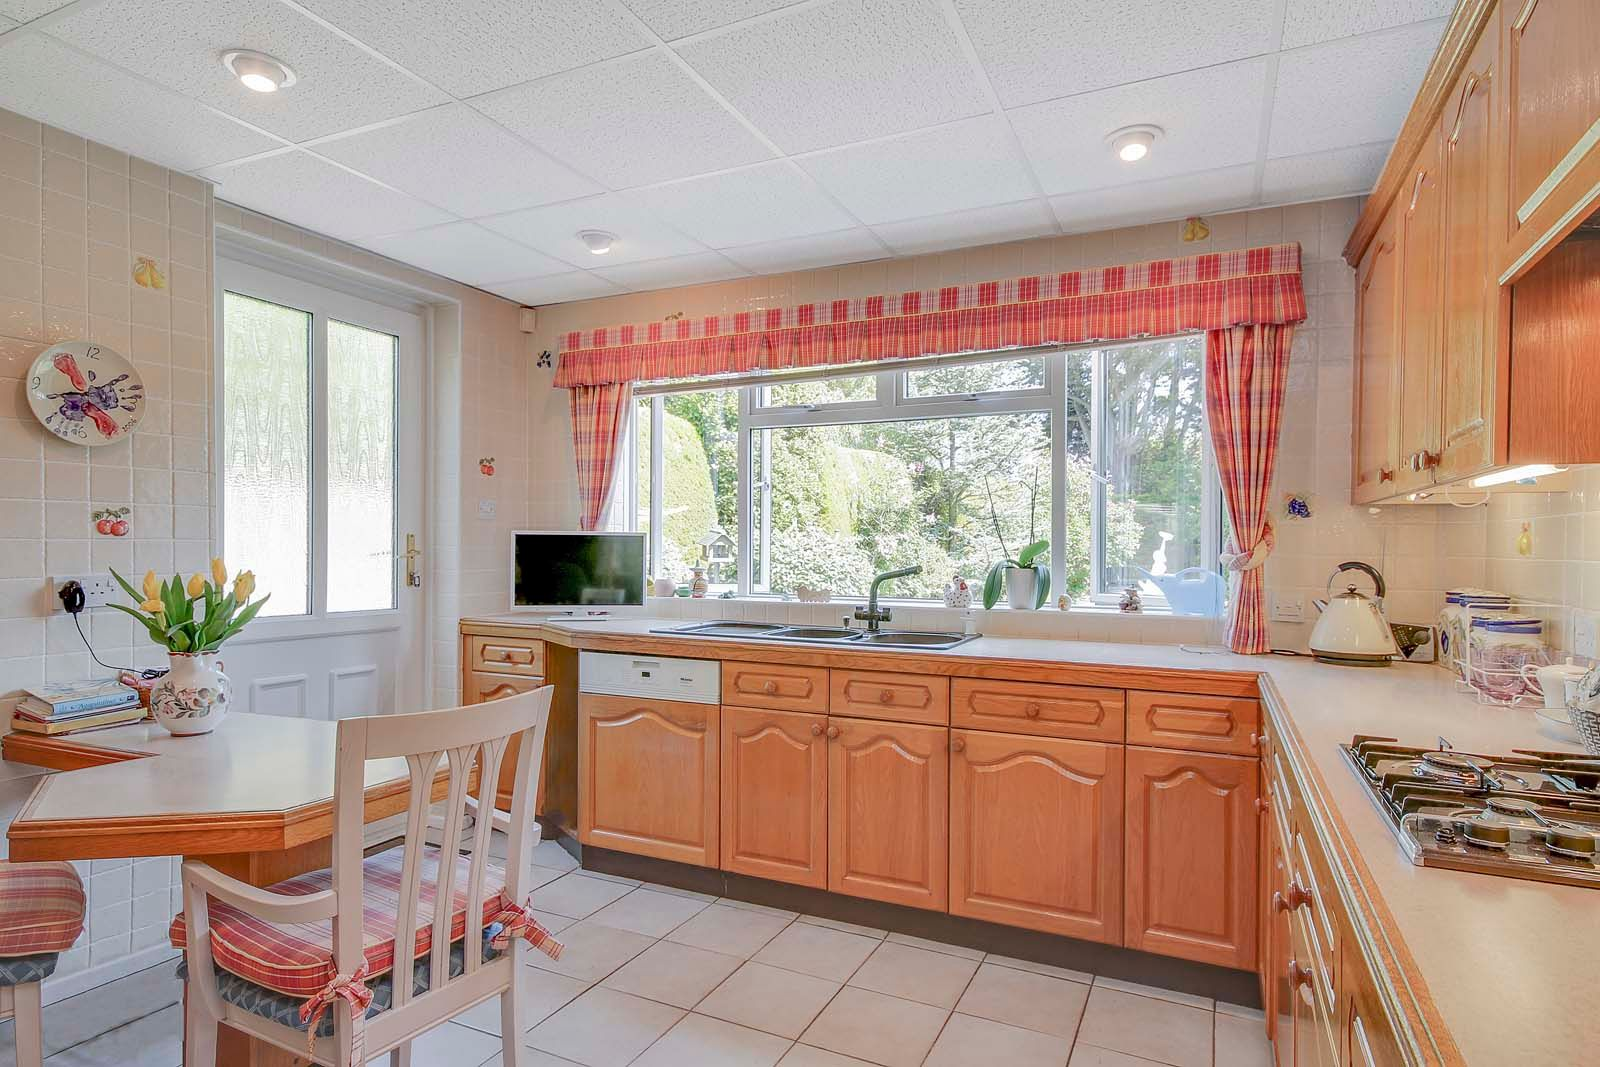 5 bed House for sale in The Willowhayne, East Preston - Kitchen (Property Image 4)